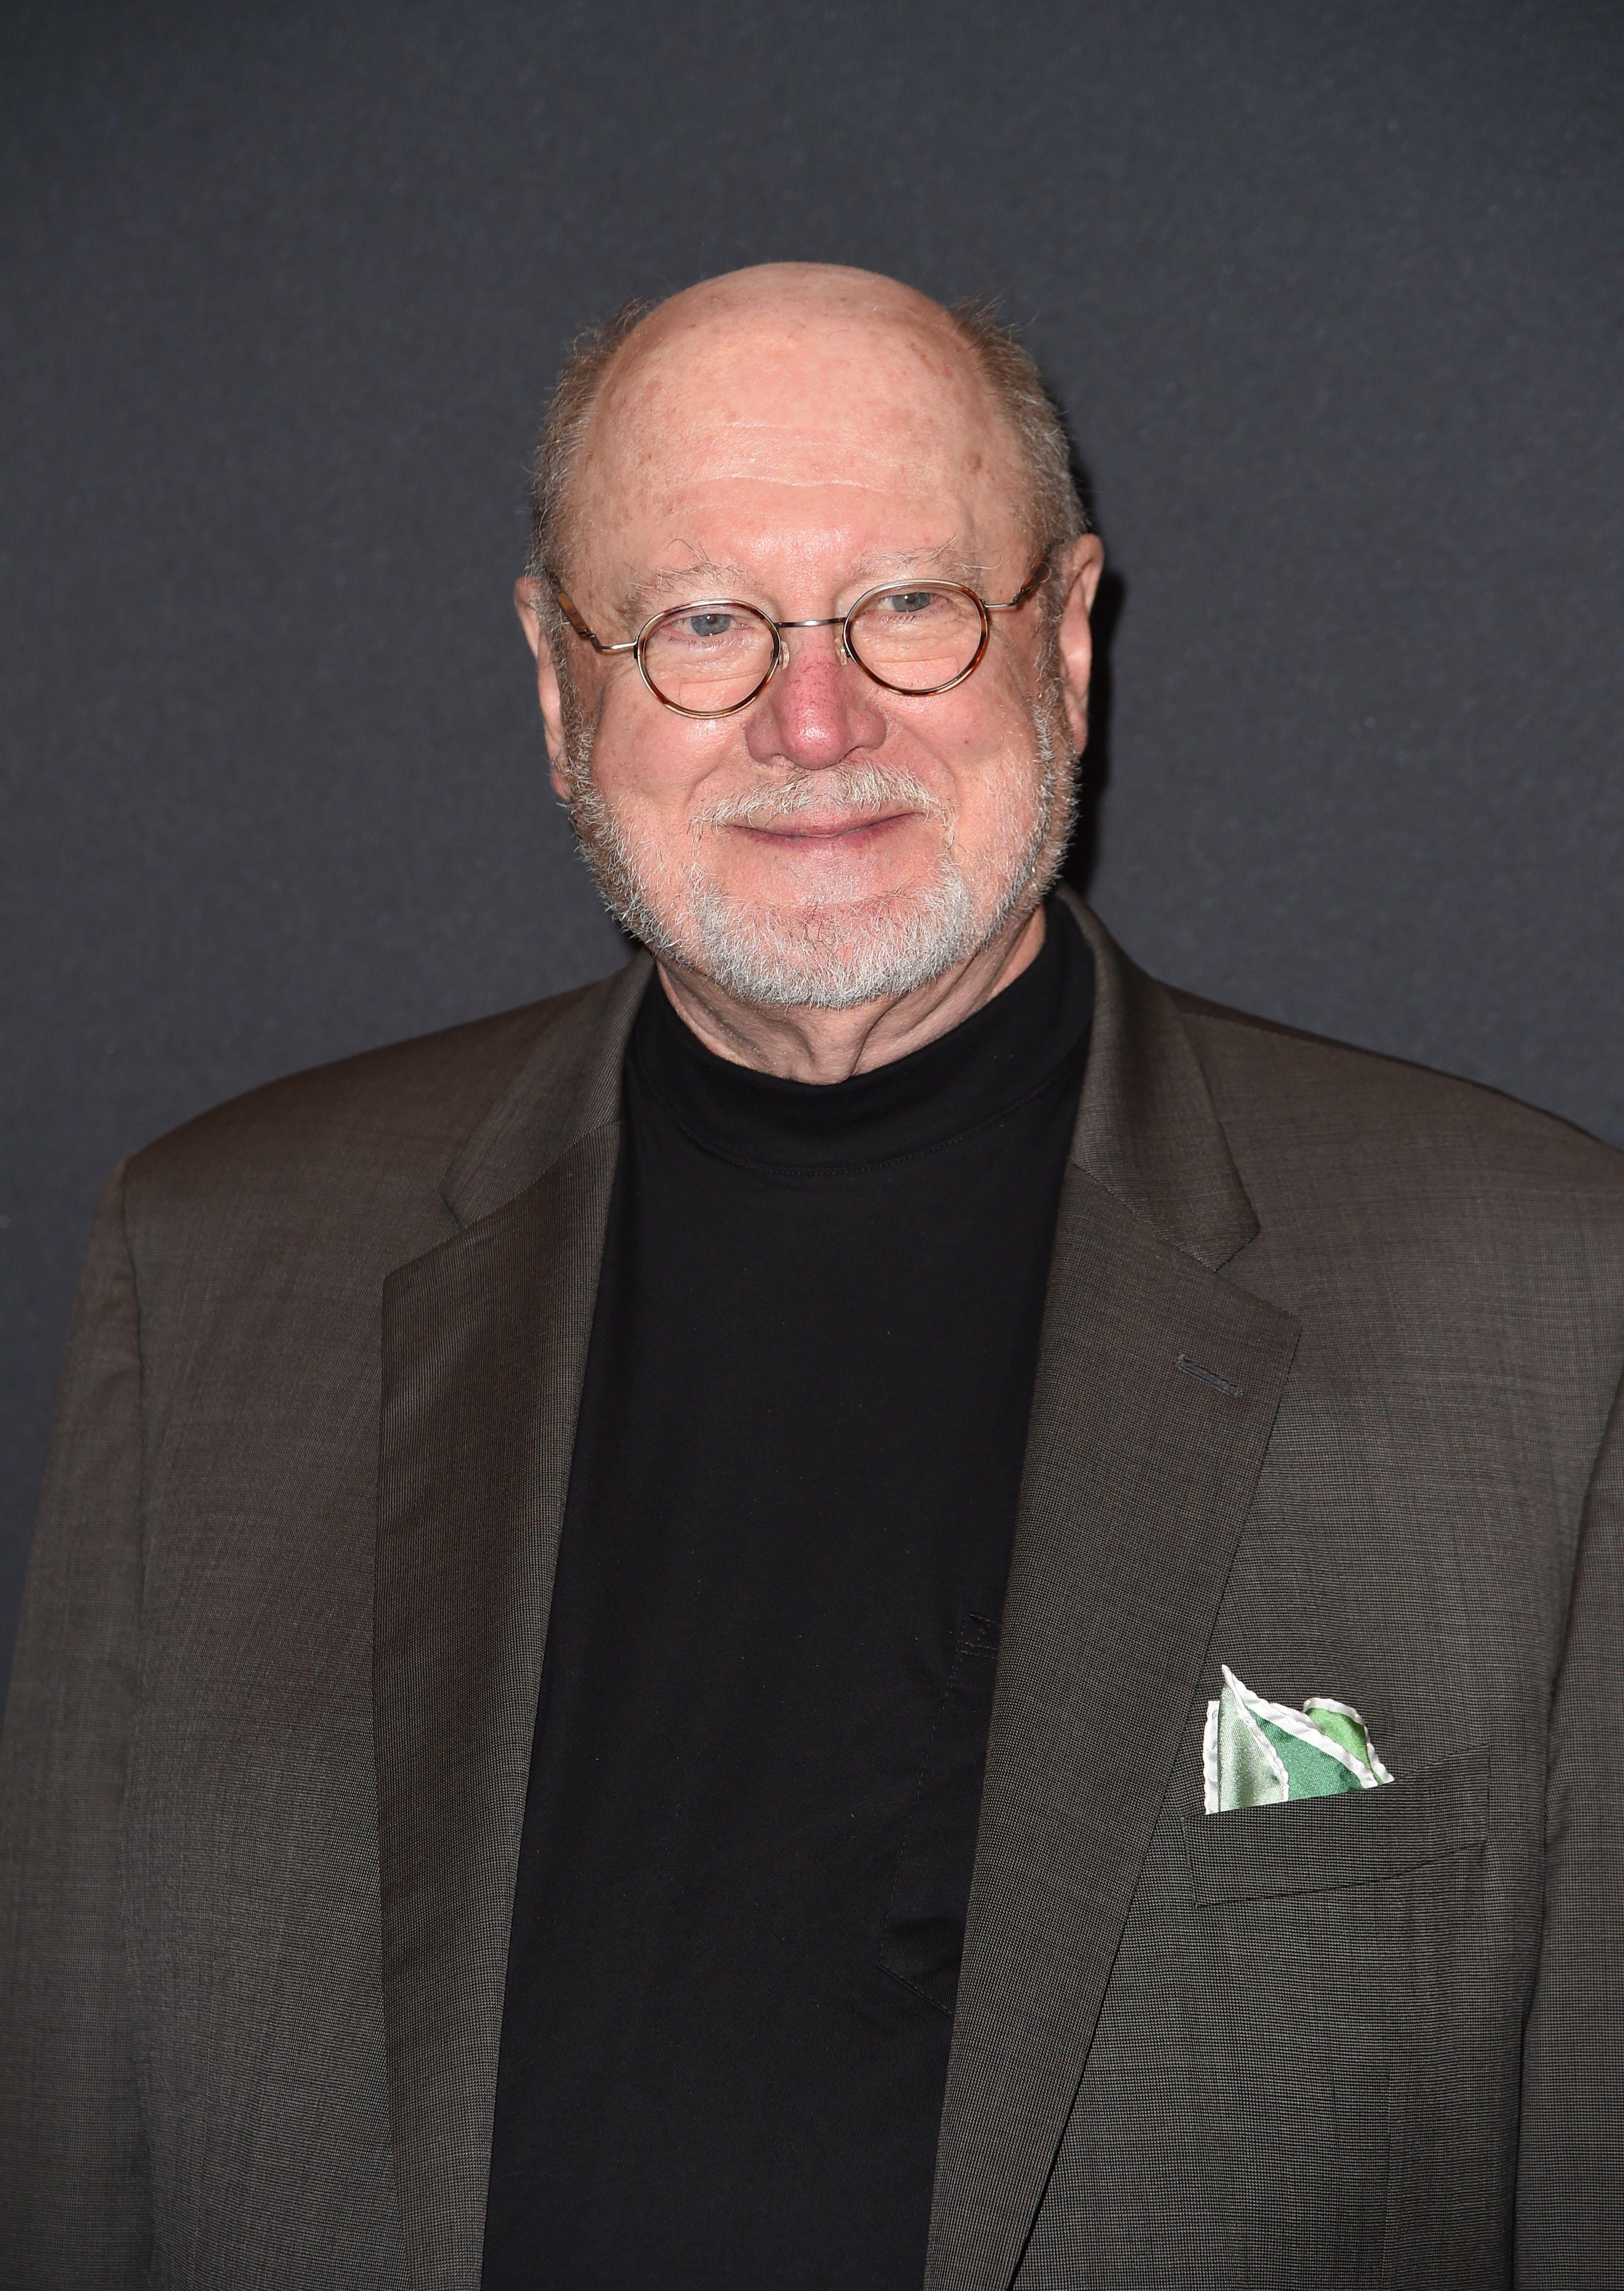 David Ogden Stiers attends a 25th anniversary screening of Beauty and the Beast in 2016.